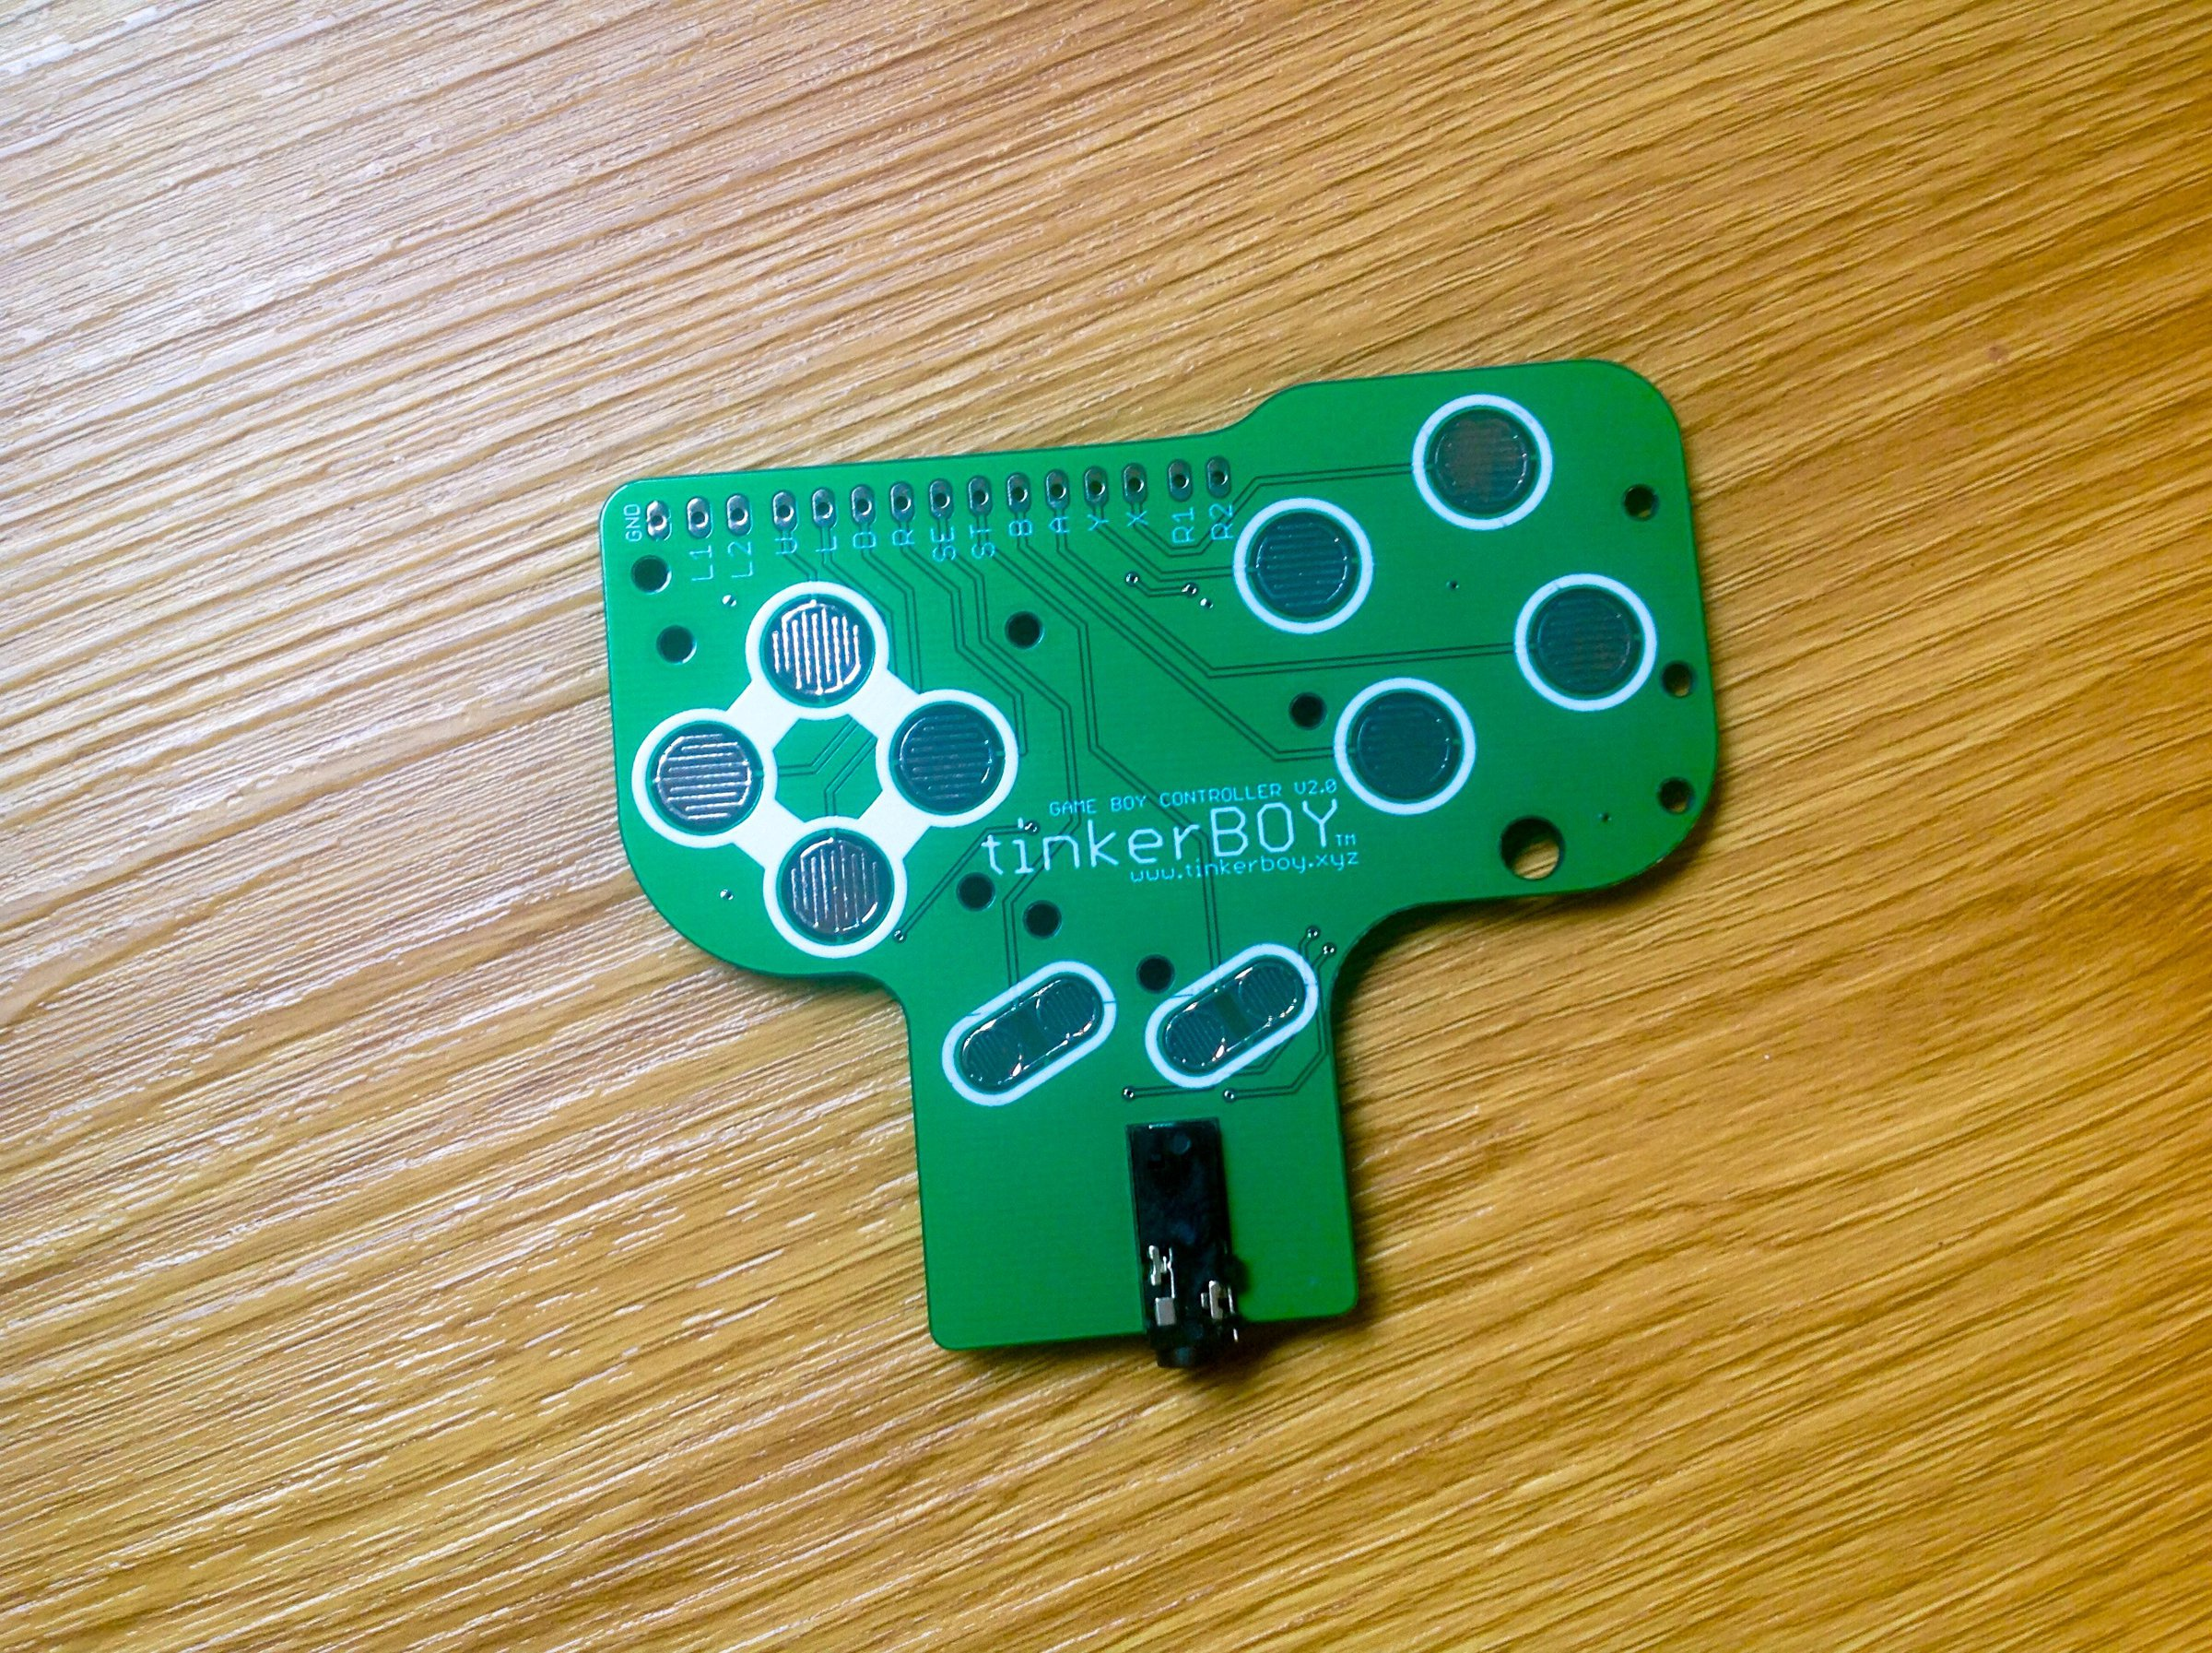 Game Boy Controller V2 0 W Built In Audio Amp From